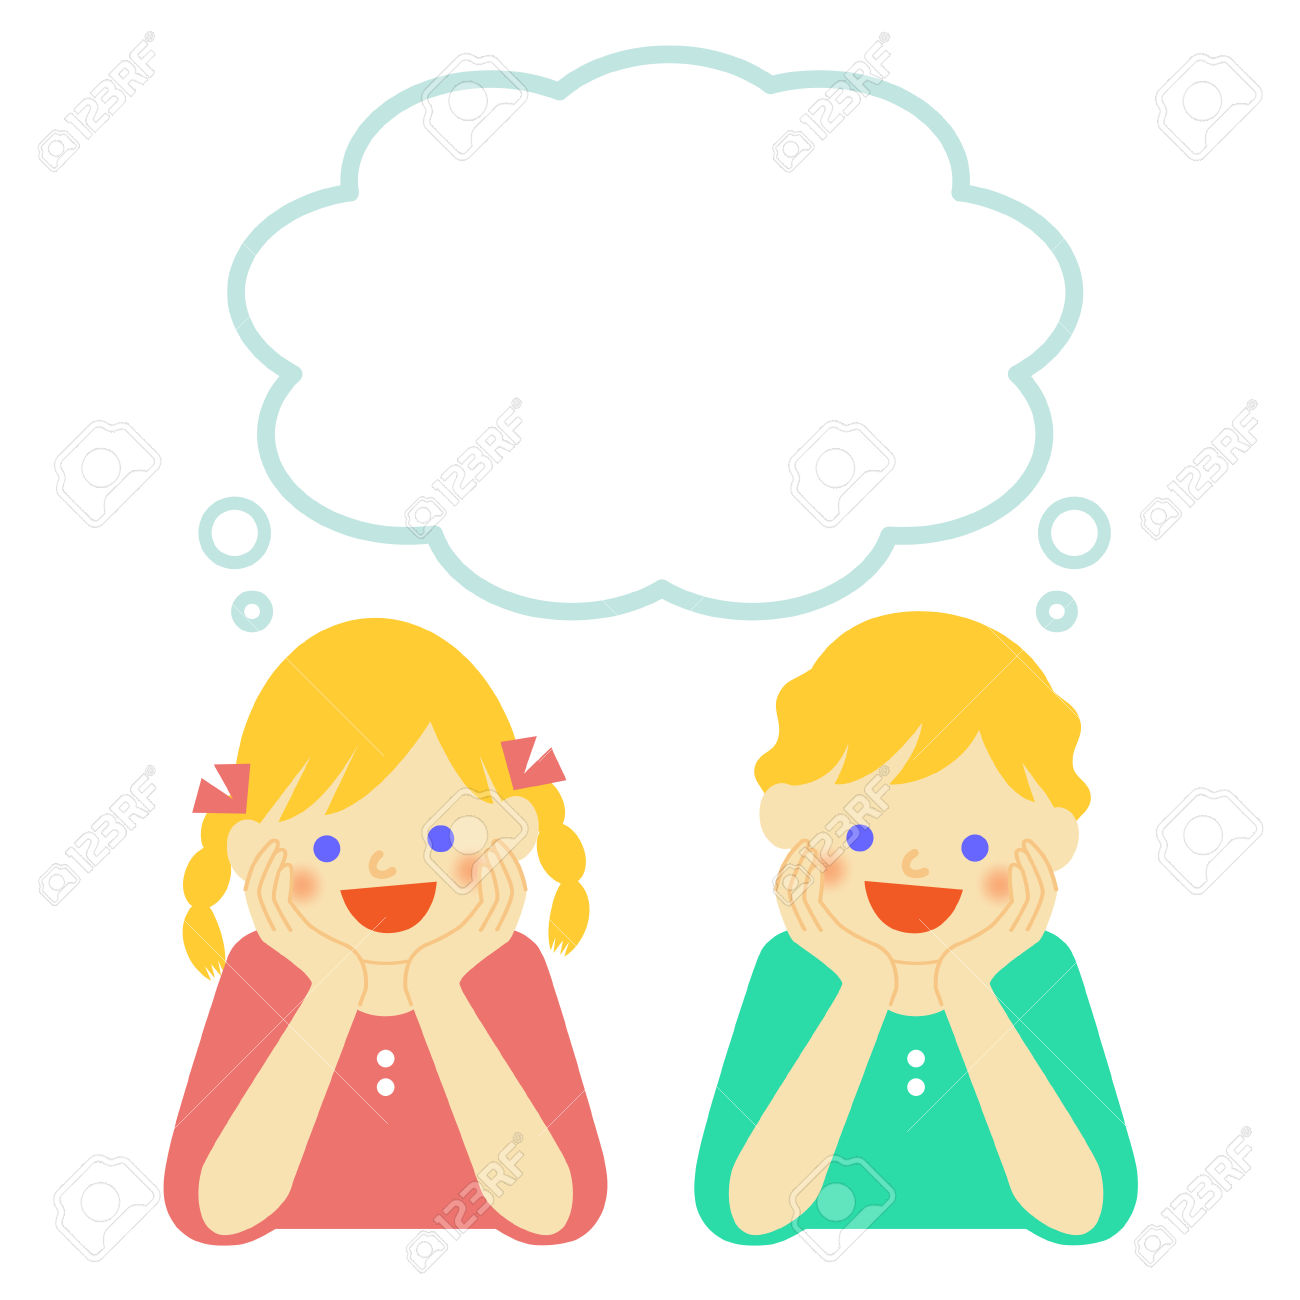 Boy And Girl Thinking Clipart.